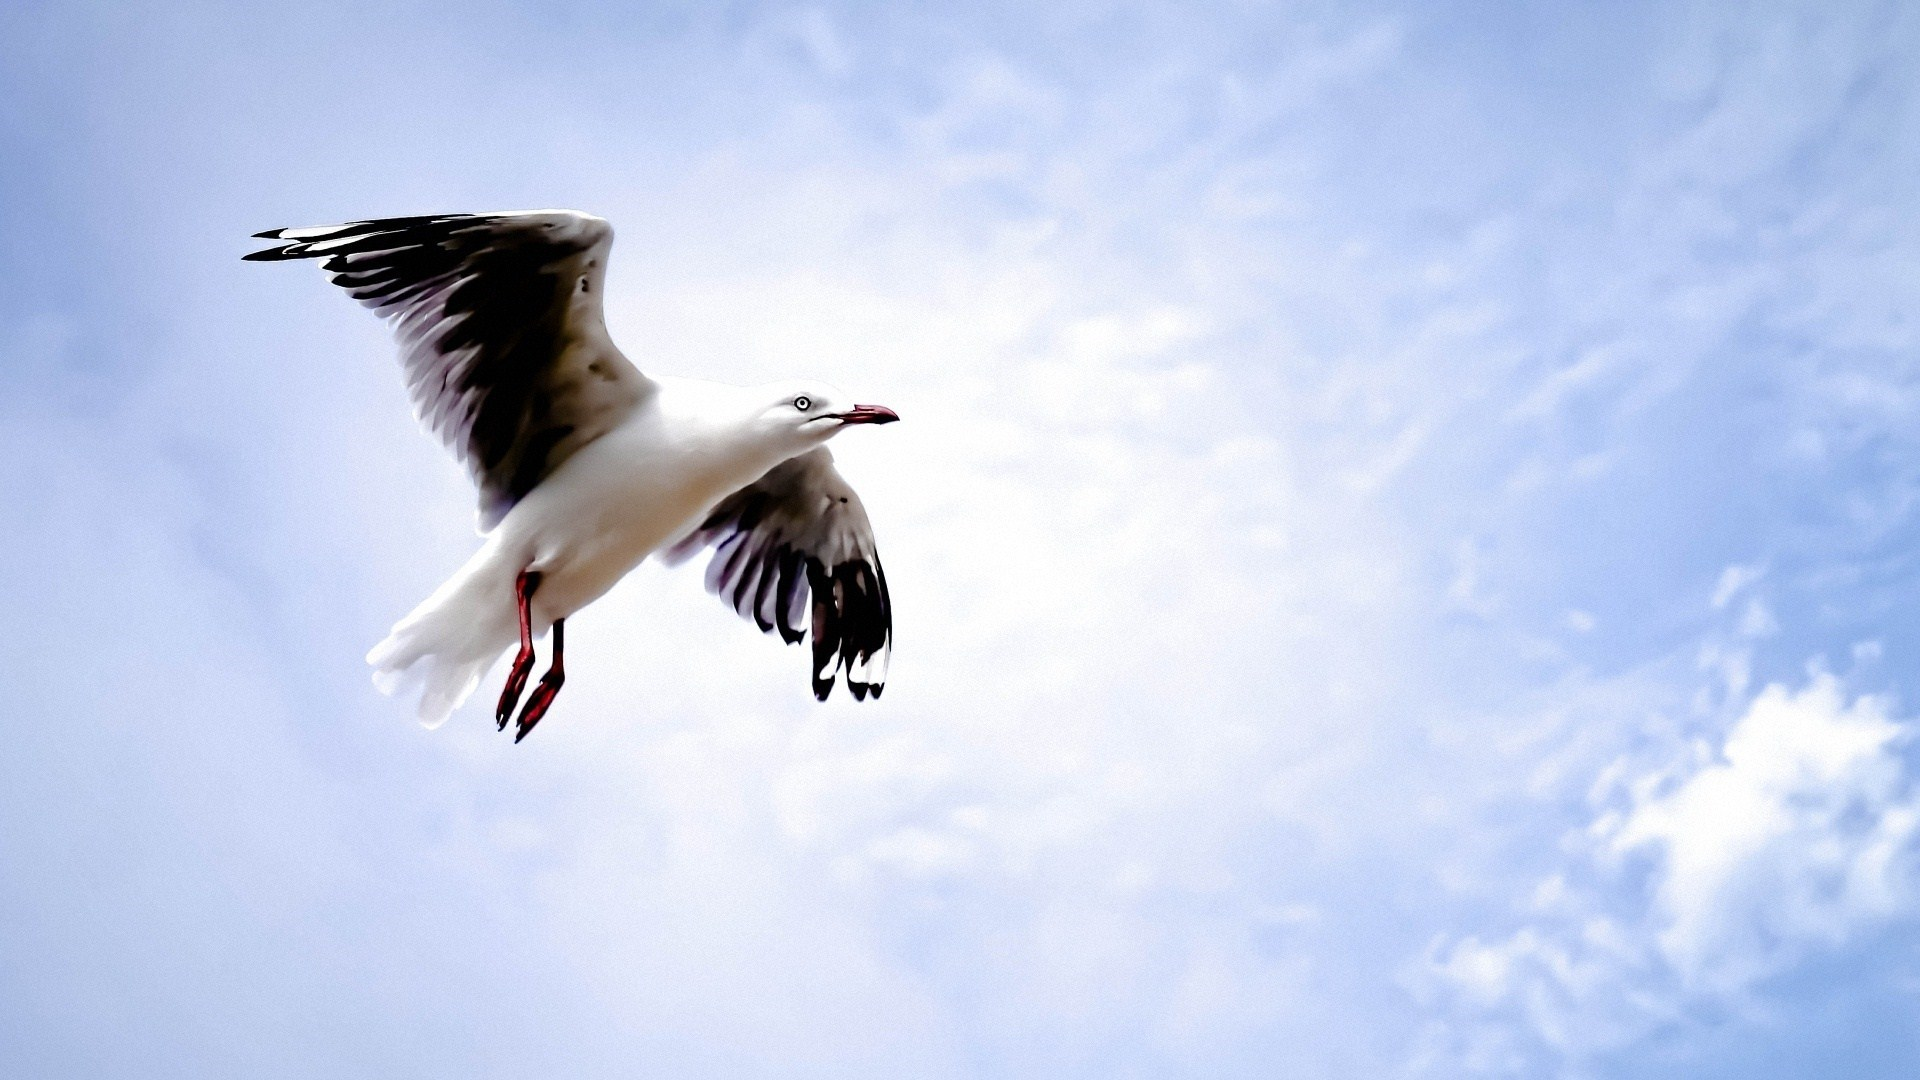 Bird Seagull Flying Sky Close-Up Photo